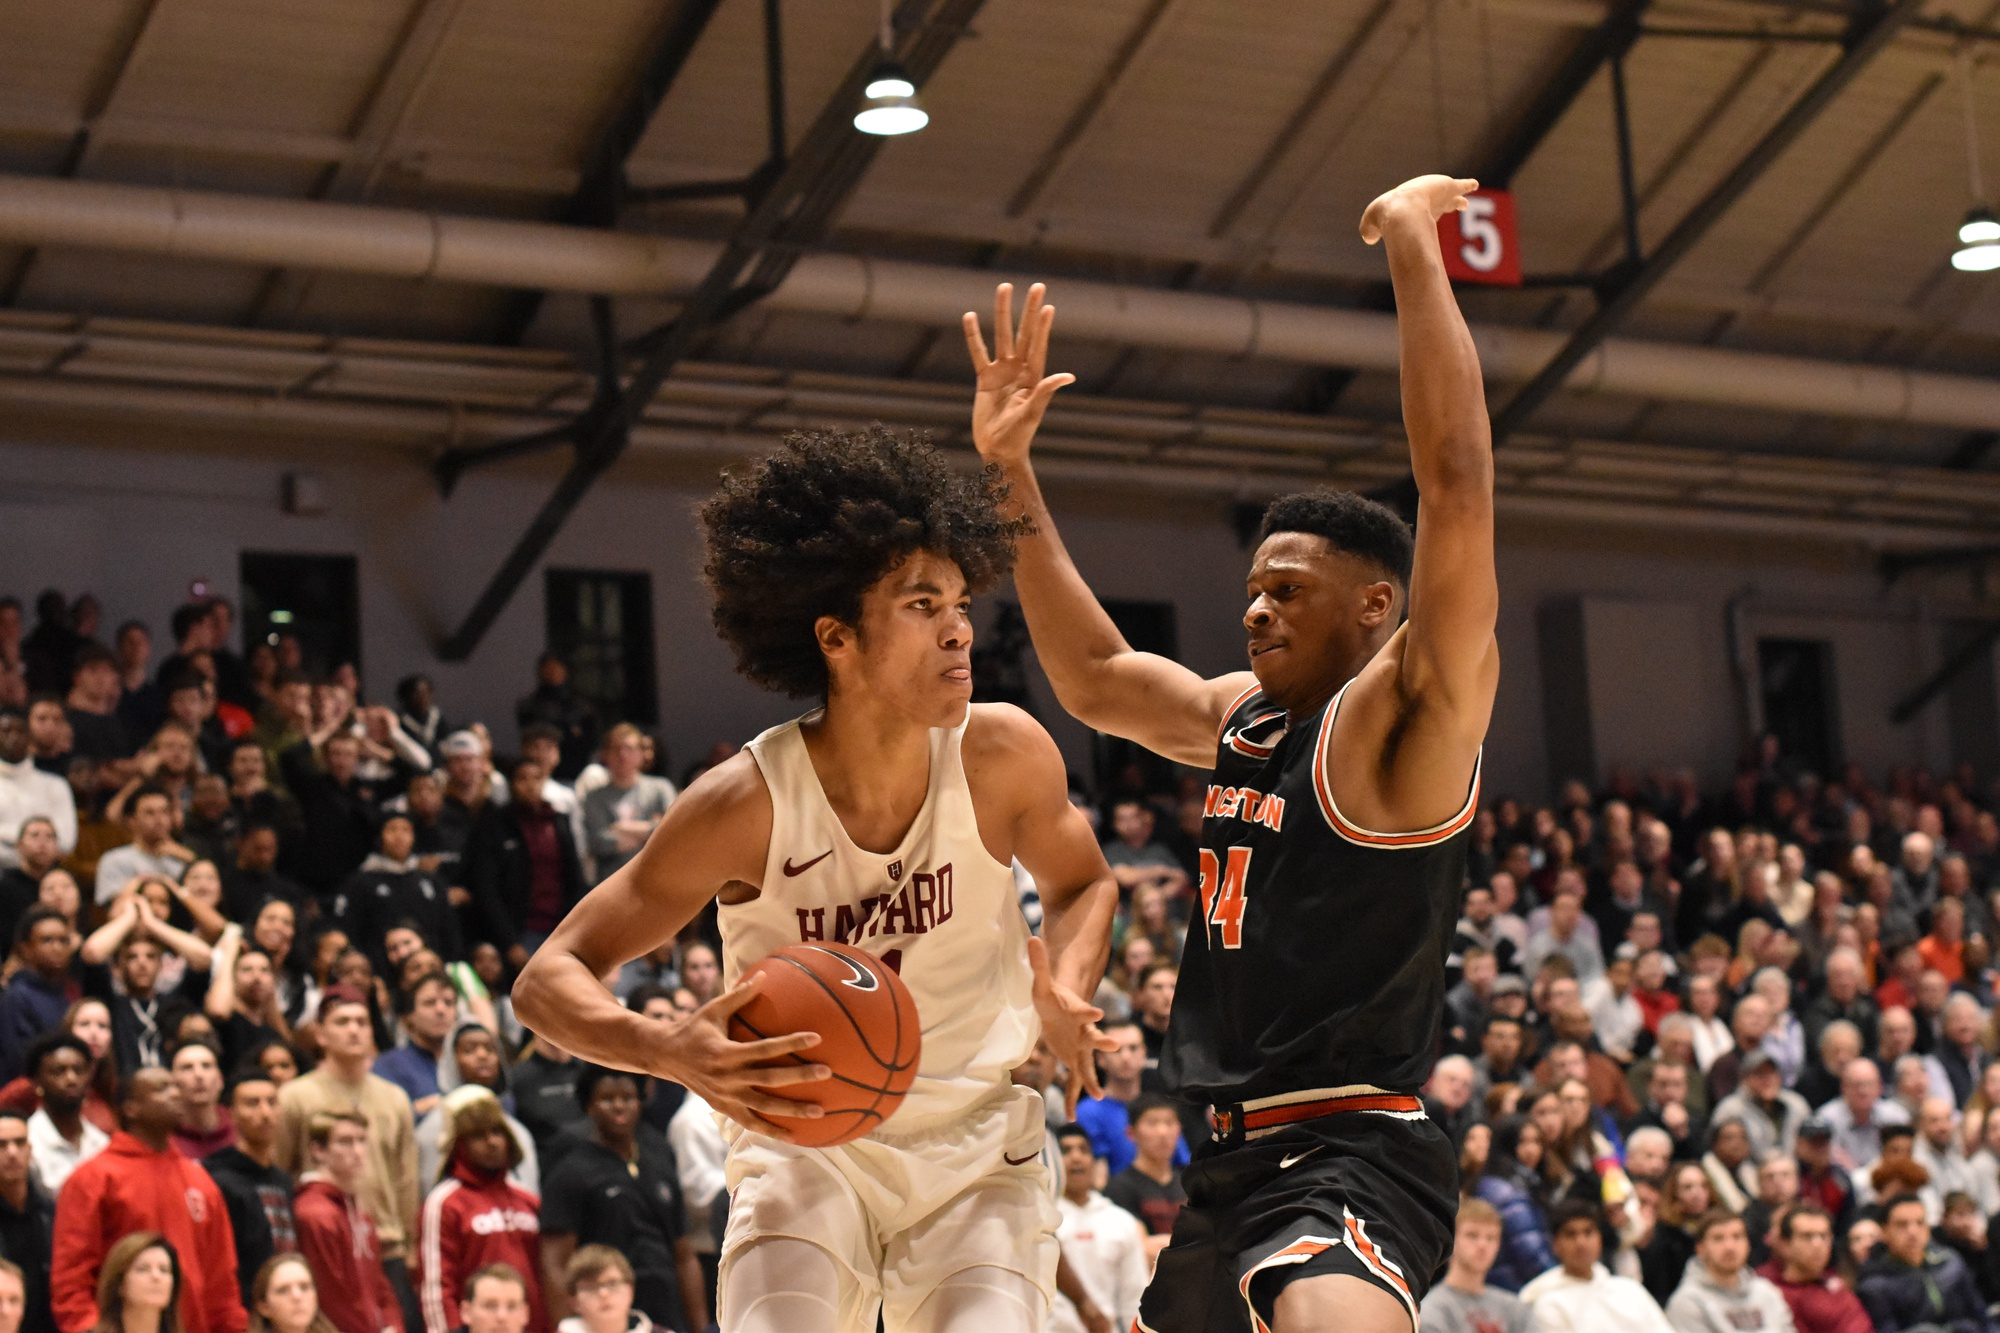 Sophomore forward Mason Forbes tallied four blocks in Friday's win over Princeton.